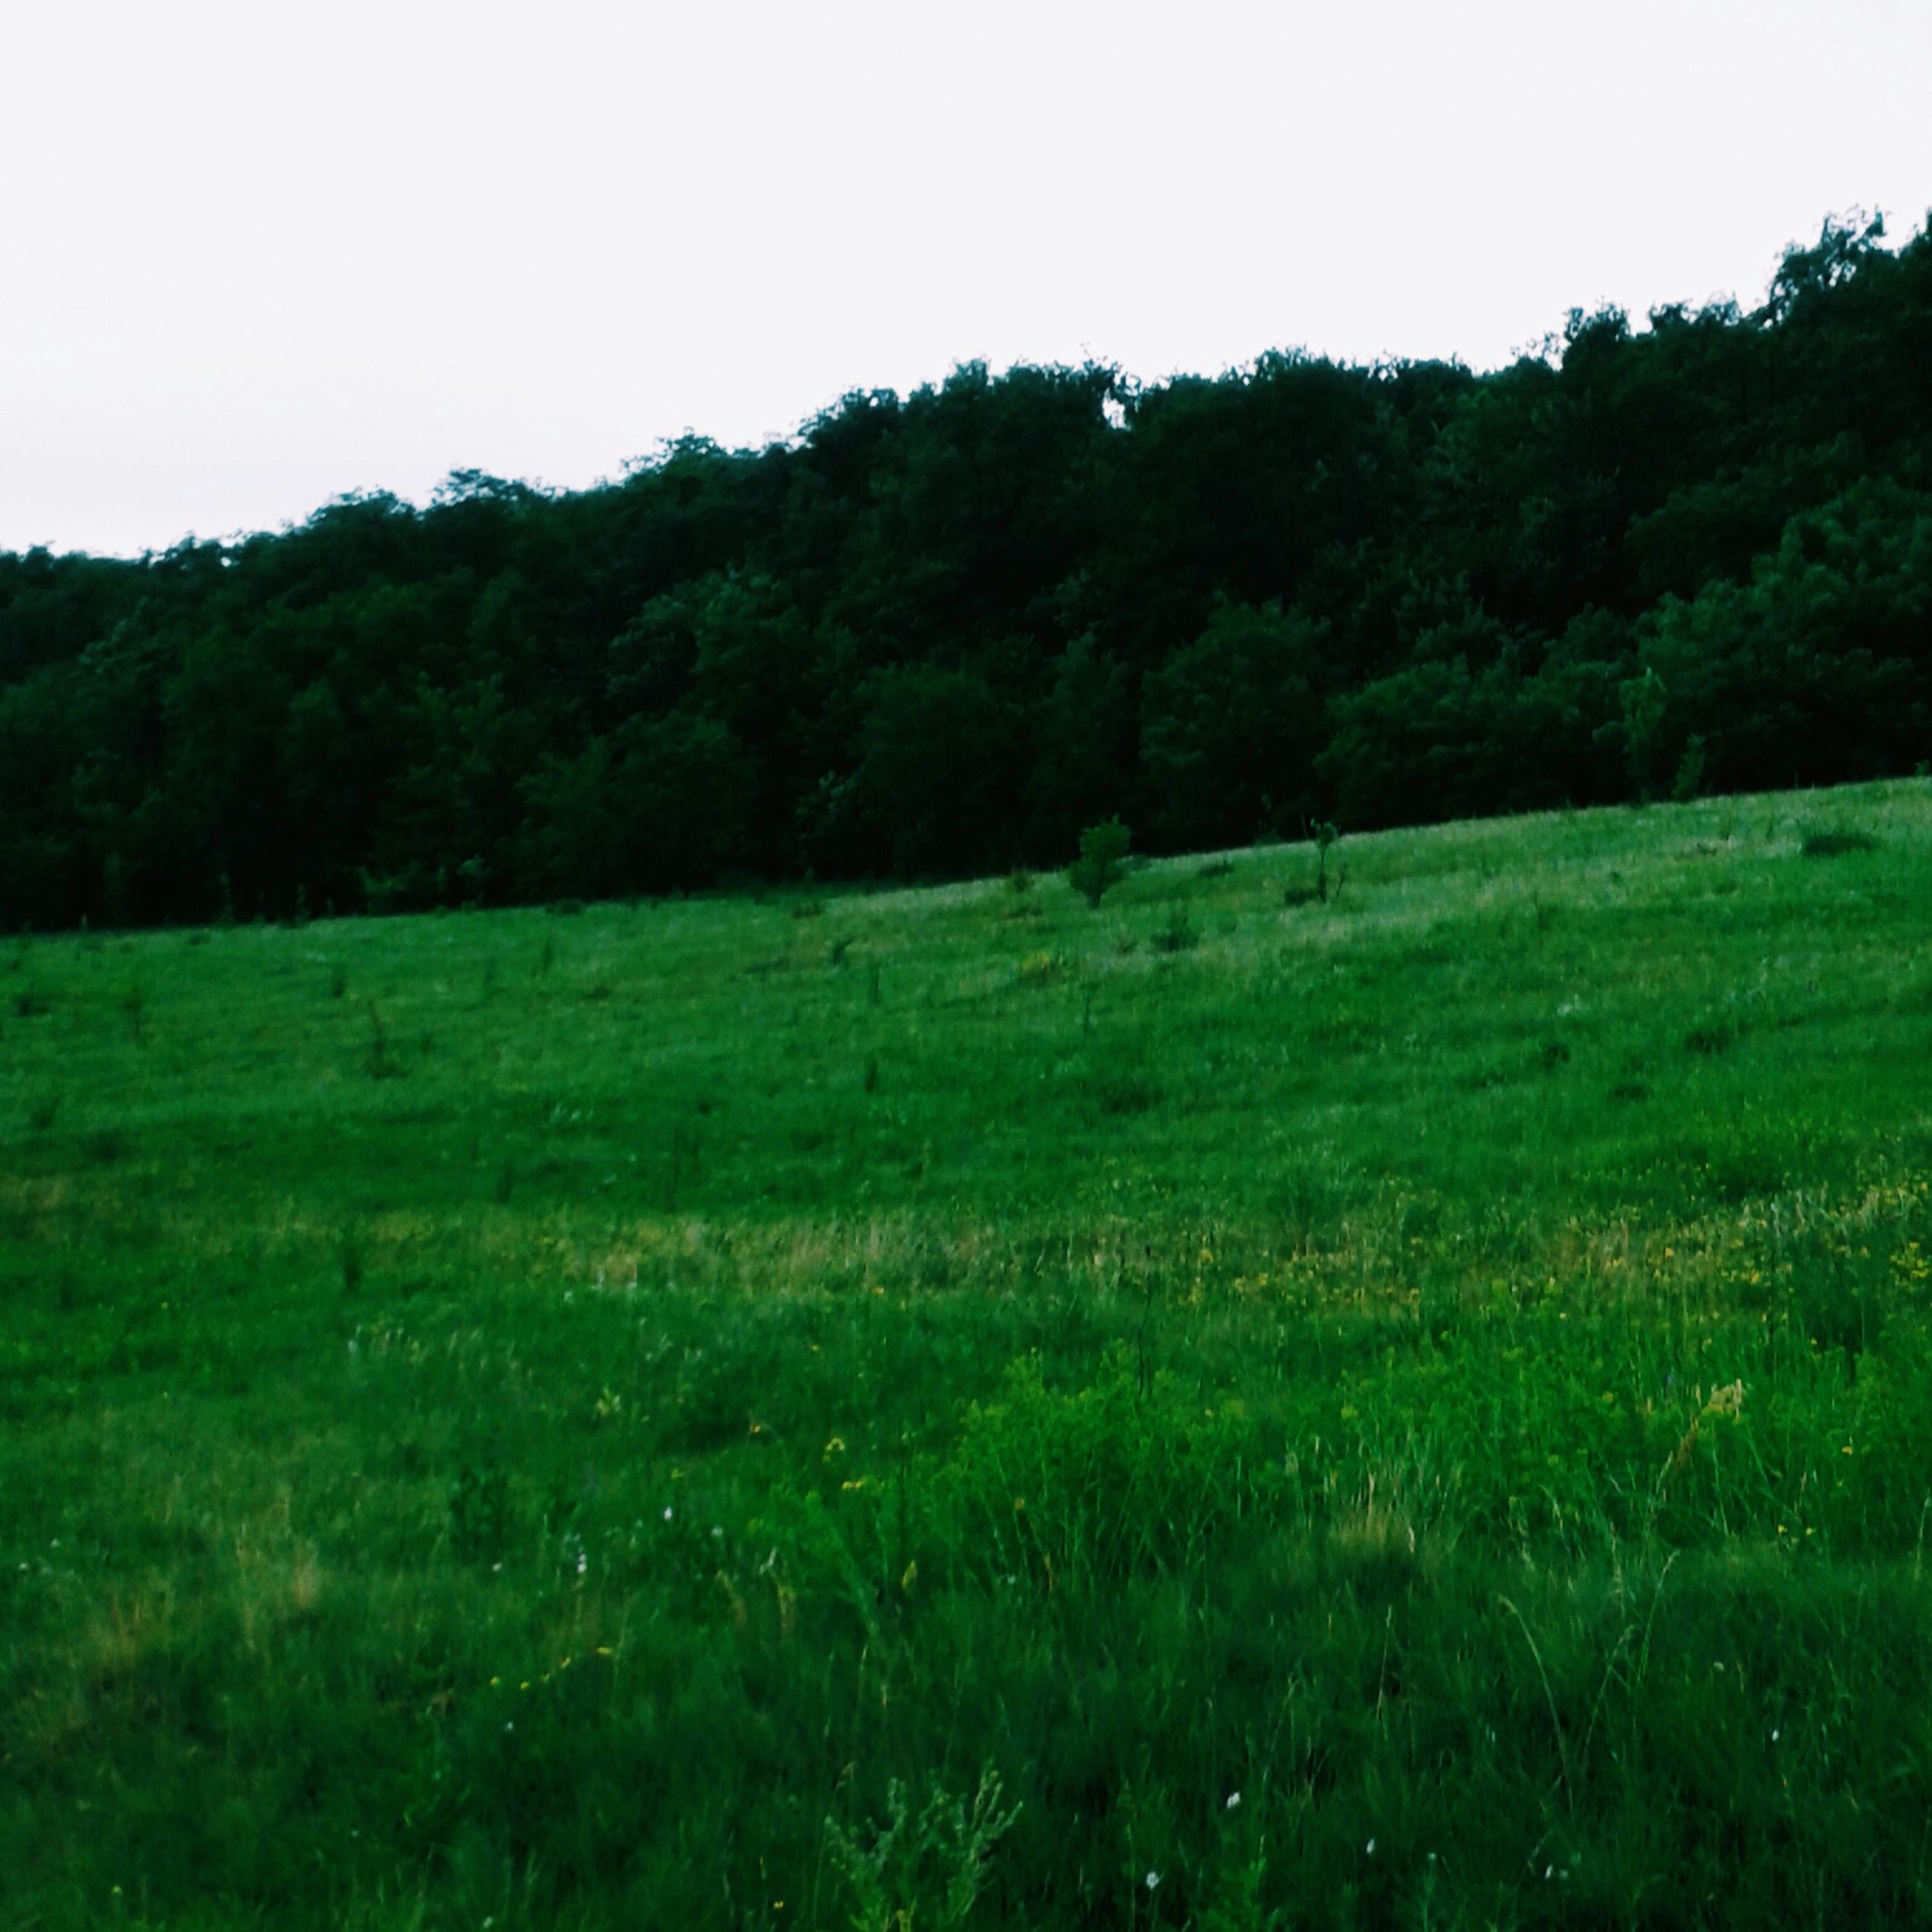 tree, grass, green color, tranquil scene, tranquility, growth, field, grassy, landscape, beauty in nature, scenics, nature, clear sky, lush foliage, green, non-urban scene, forest, idyllic, day, outdoors